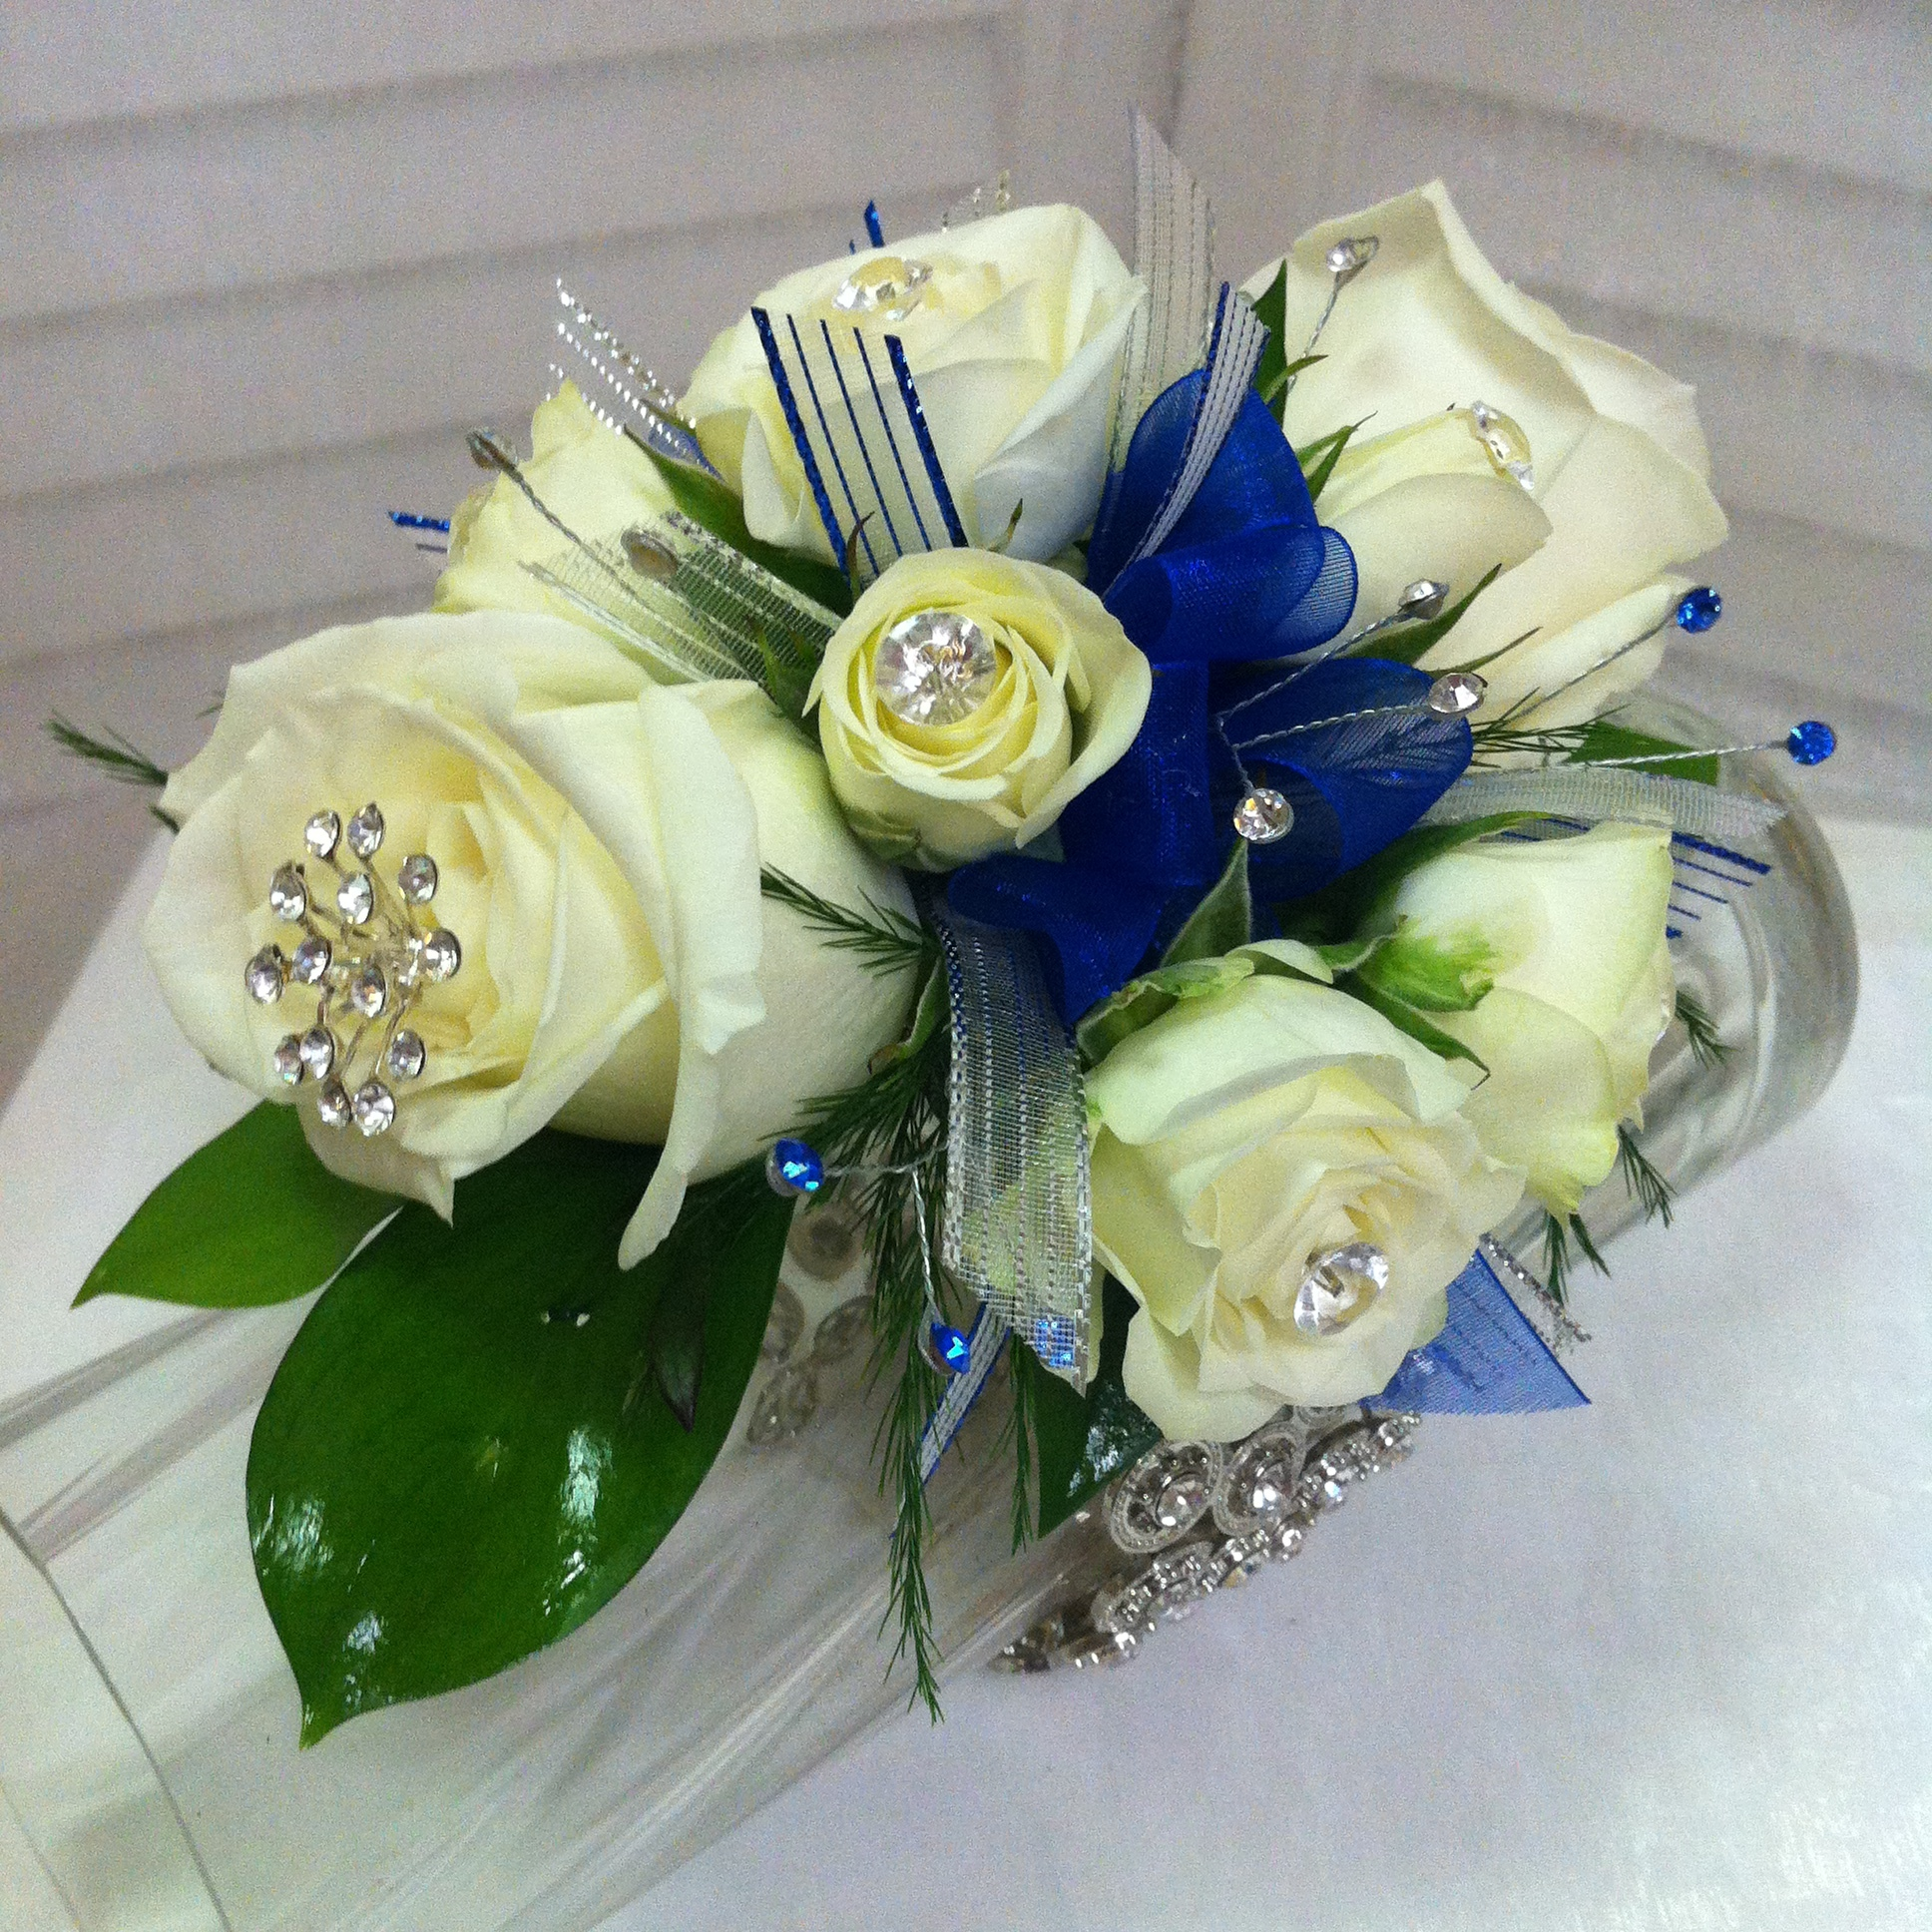 Plus Corsage (30) with Extra Flowers (5), Extra Jewels (5), Super Bracelet (12), Specialty Jewels (8) $60